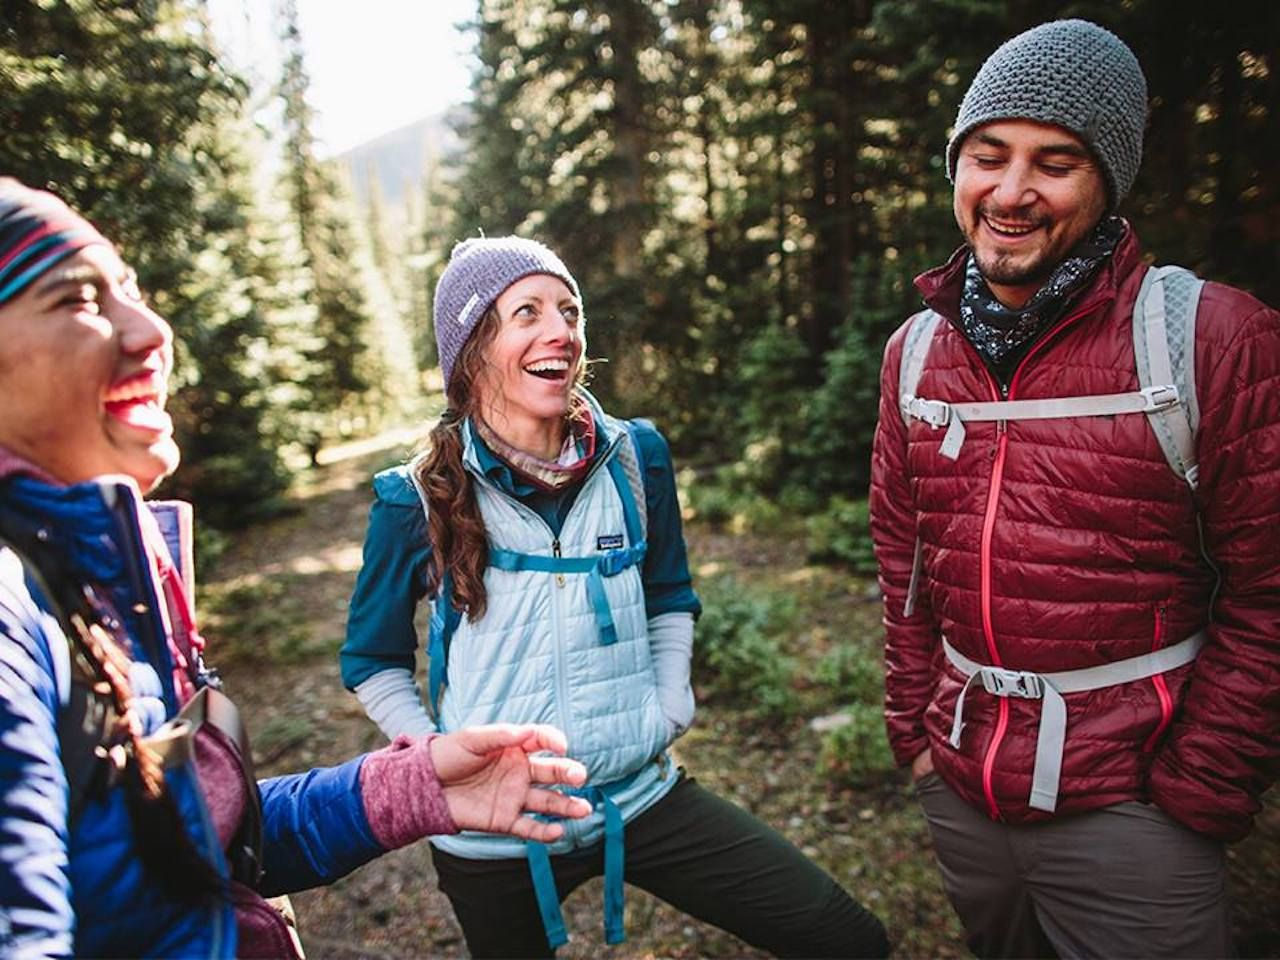 Last Minute Sale at REI on now